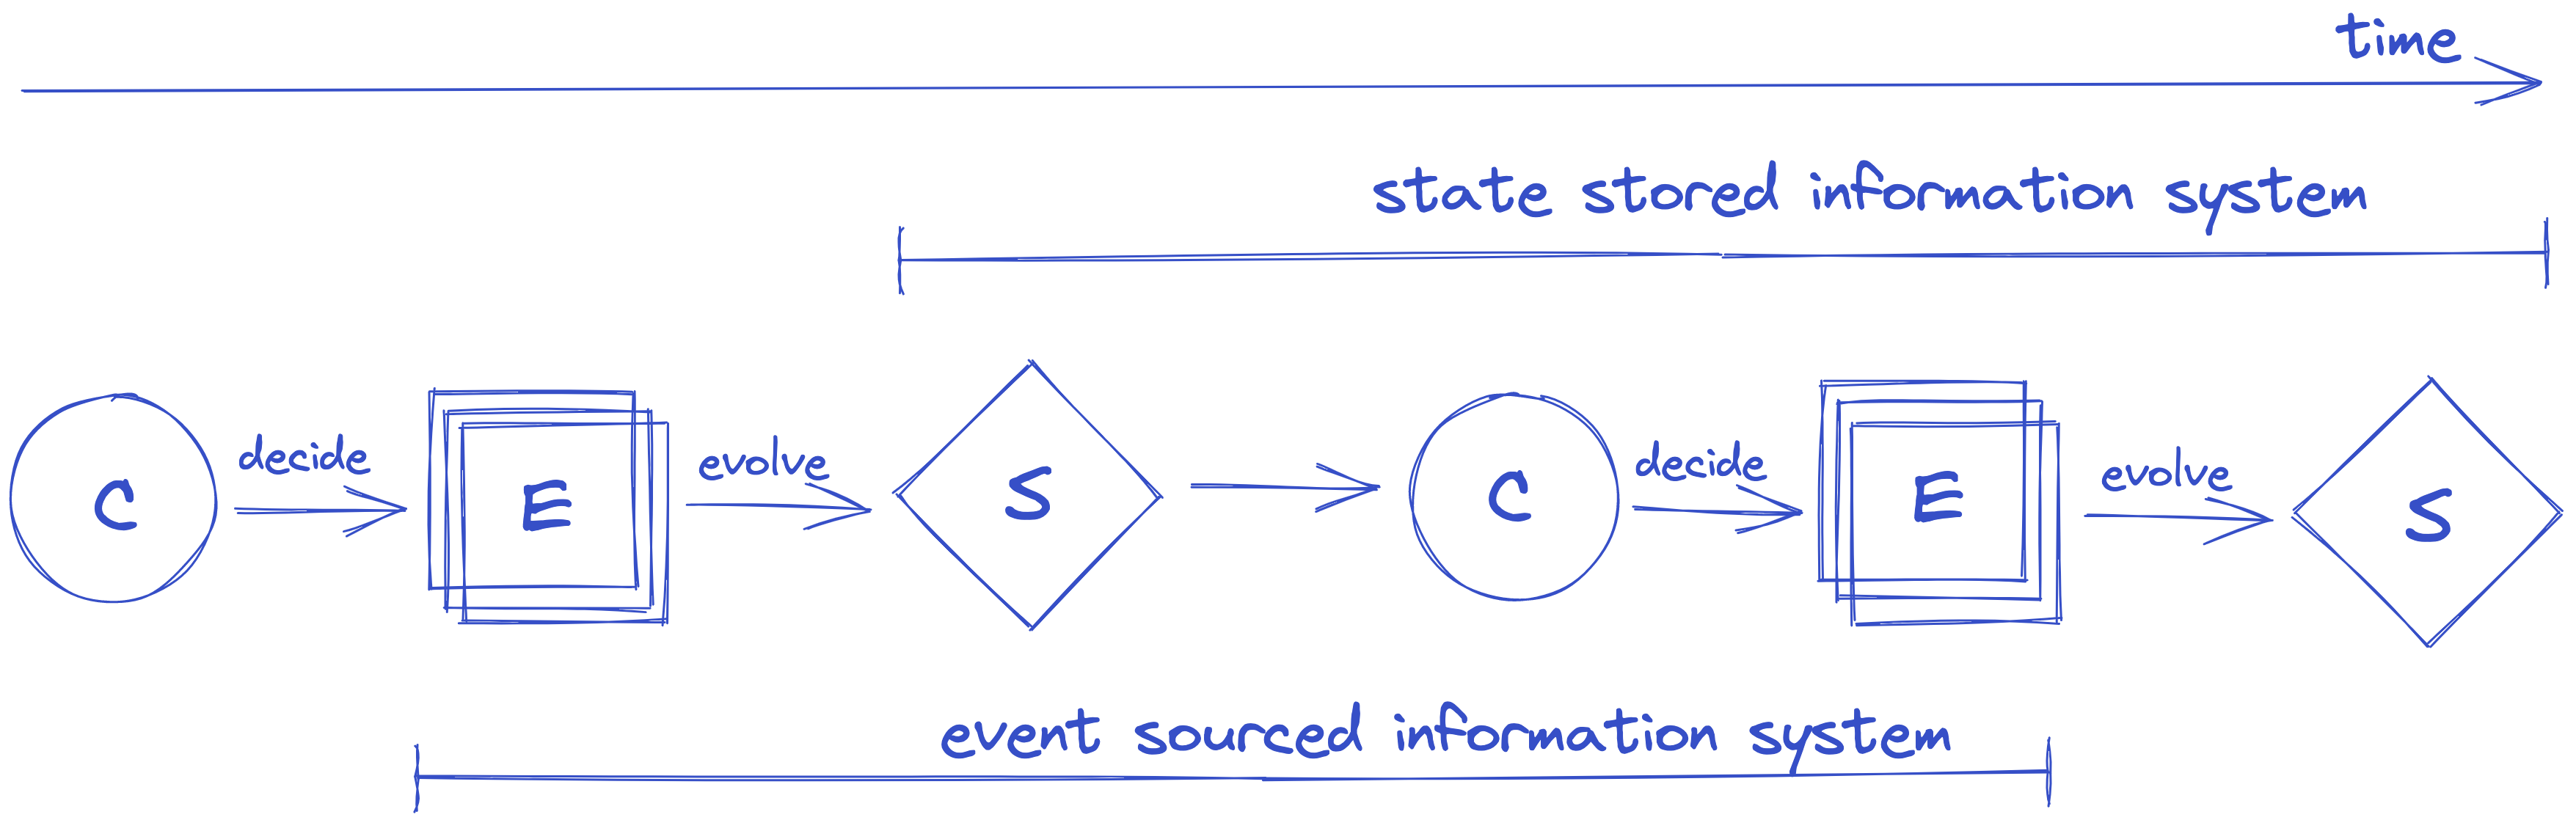 event sourced vs state stored